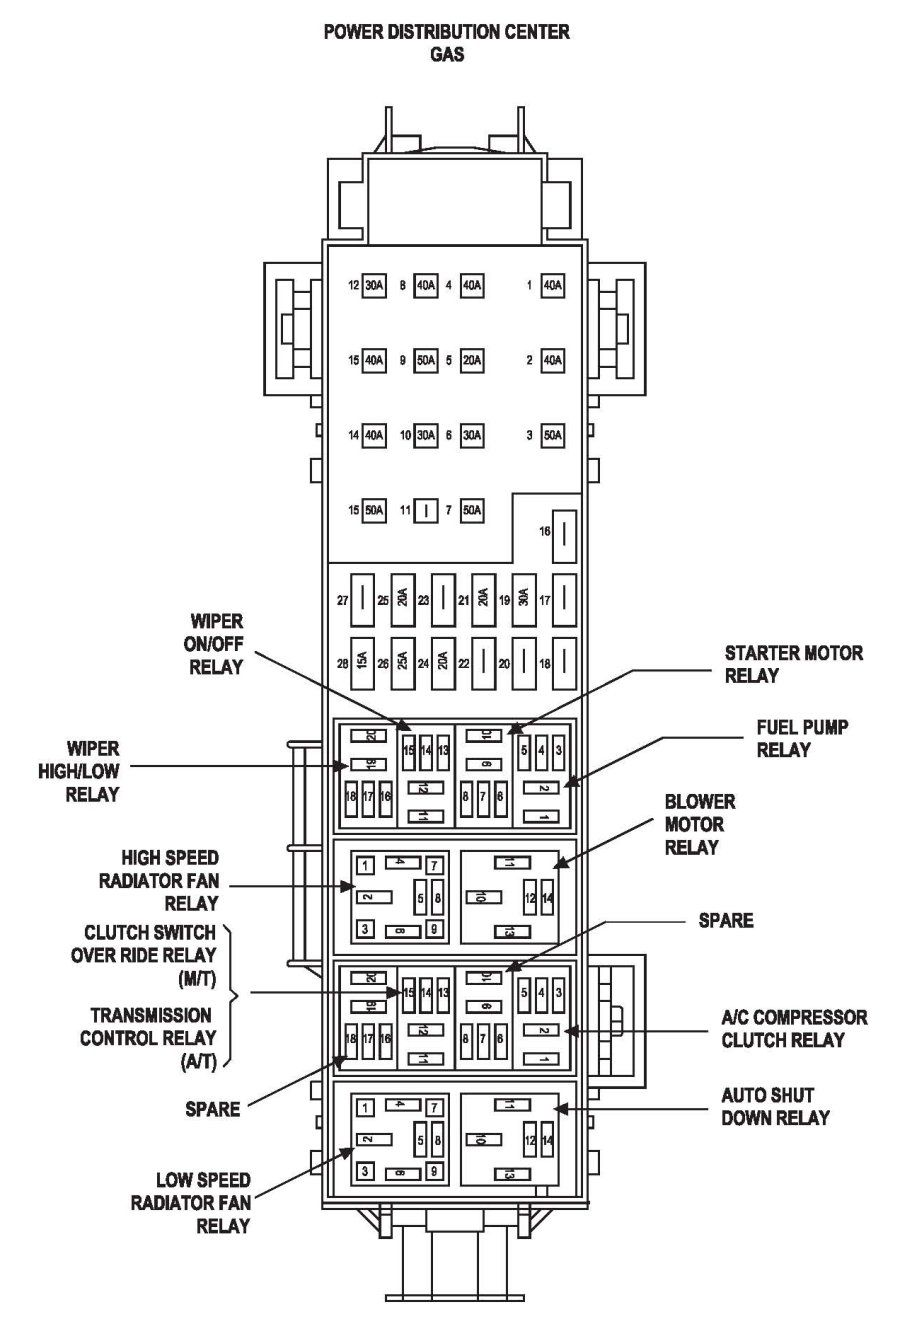 jeep liberty fuse box diagram image details jeep liberty 94 jeep grand cherokee fuse box diagram jeep fuse diagram [ 900 x 1336 Pixel ]